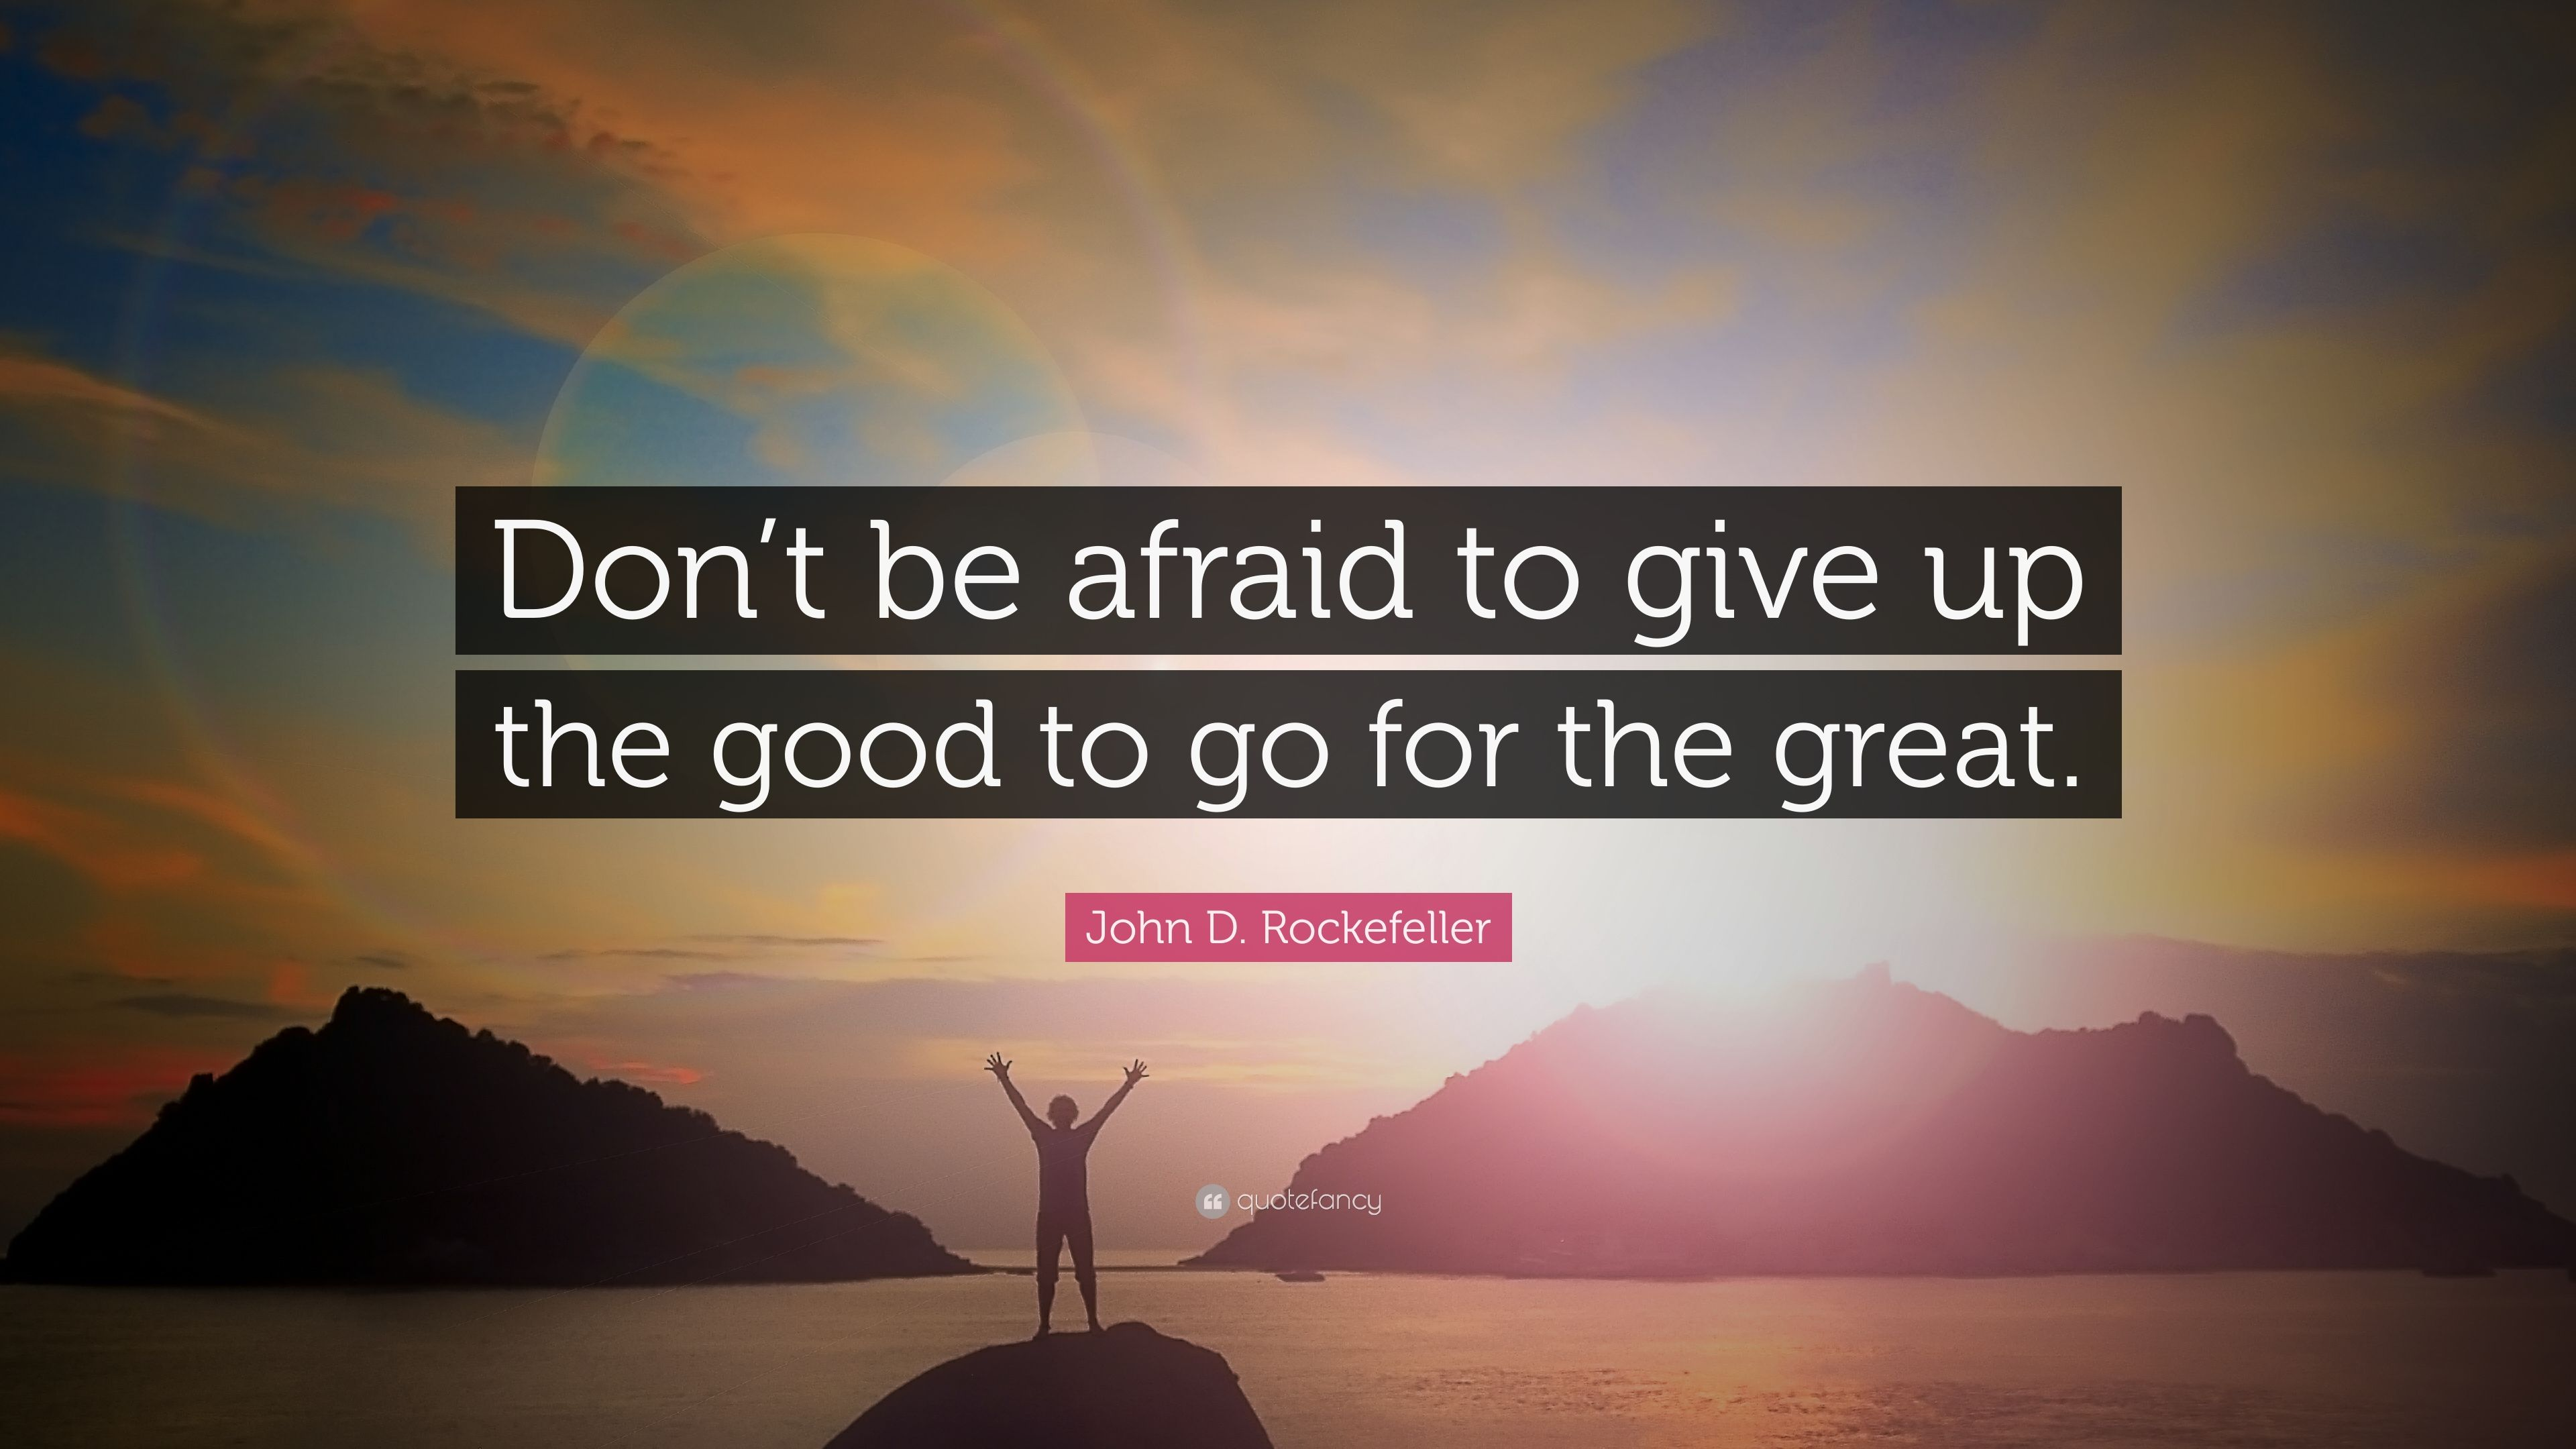 """John D. Rockefeller Quote: """"Don't be afraid to give up the good to go for the great."""" (23 wallpapers) - Quotefancy"""